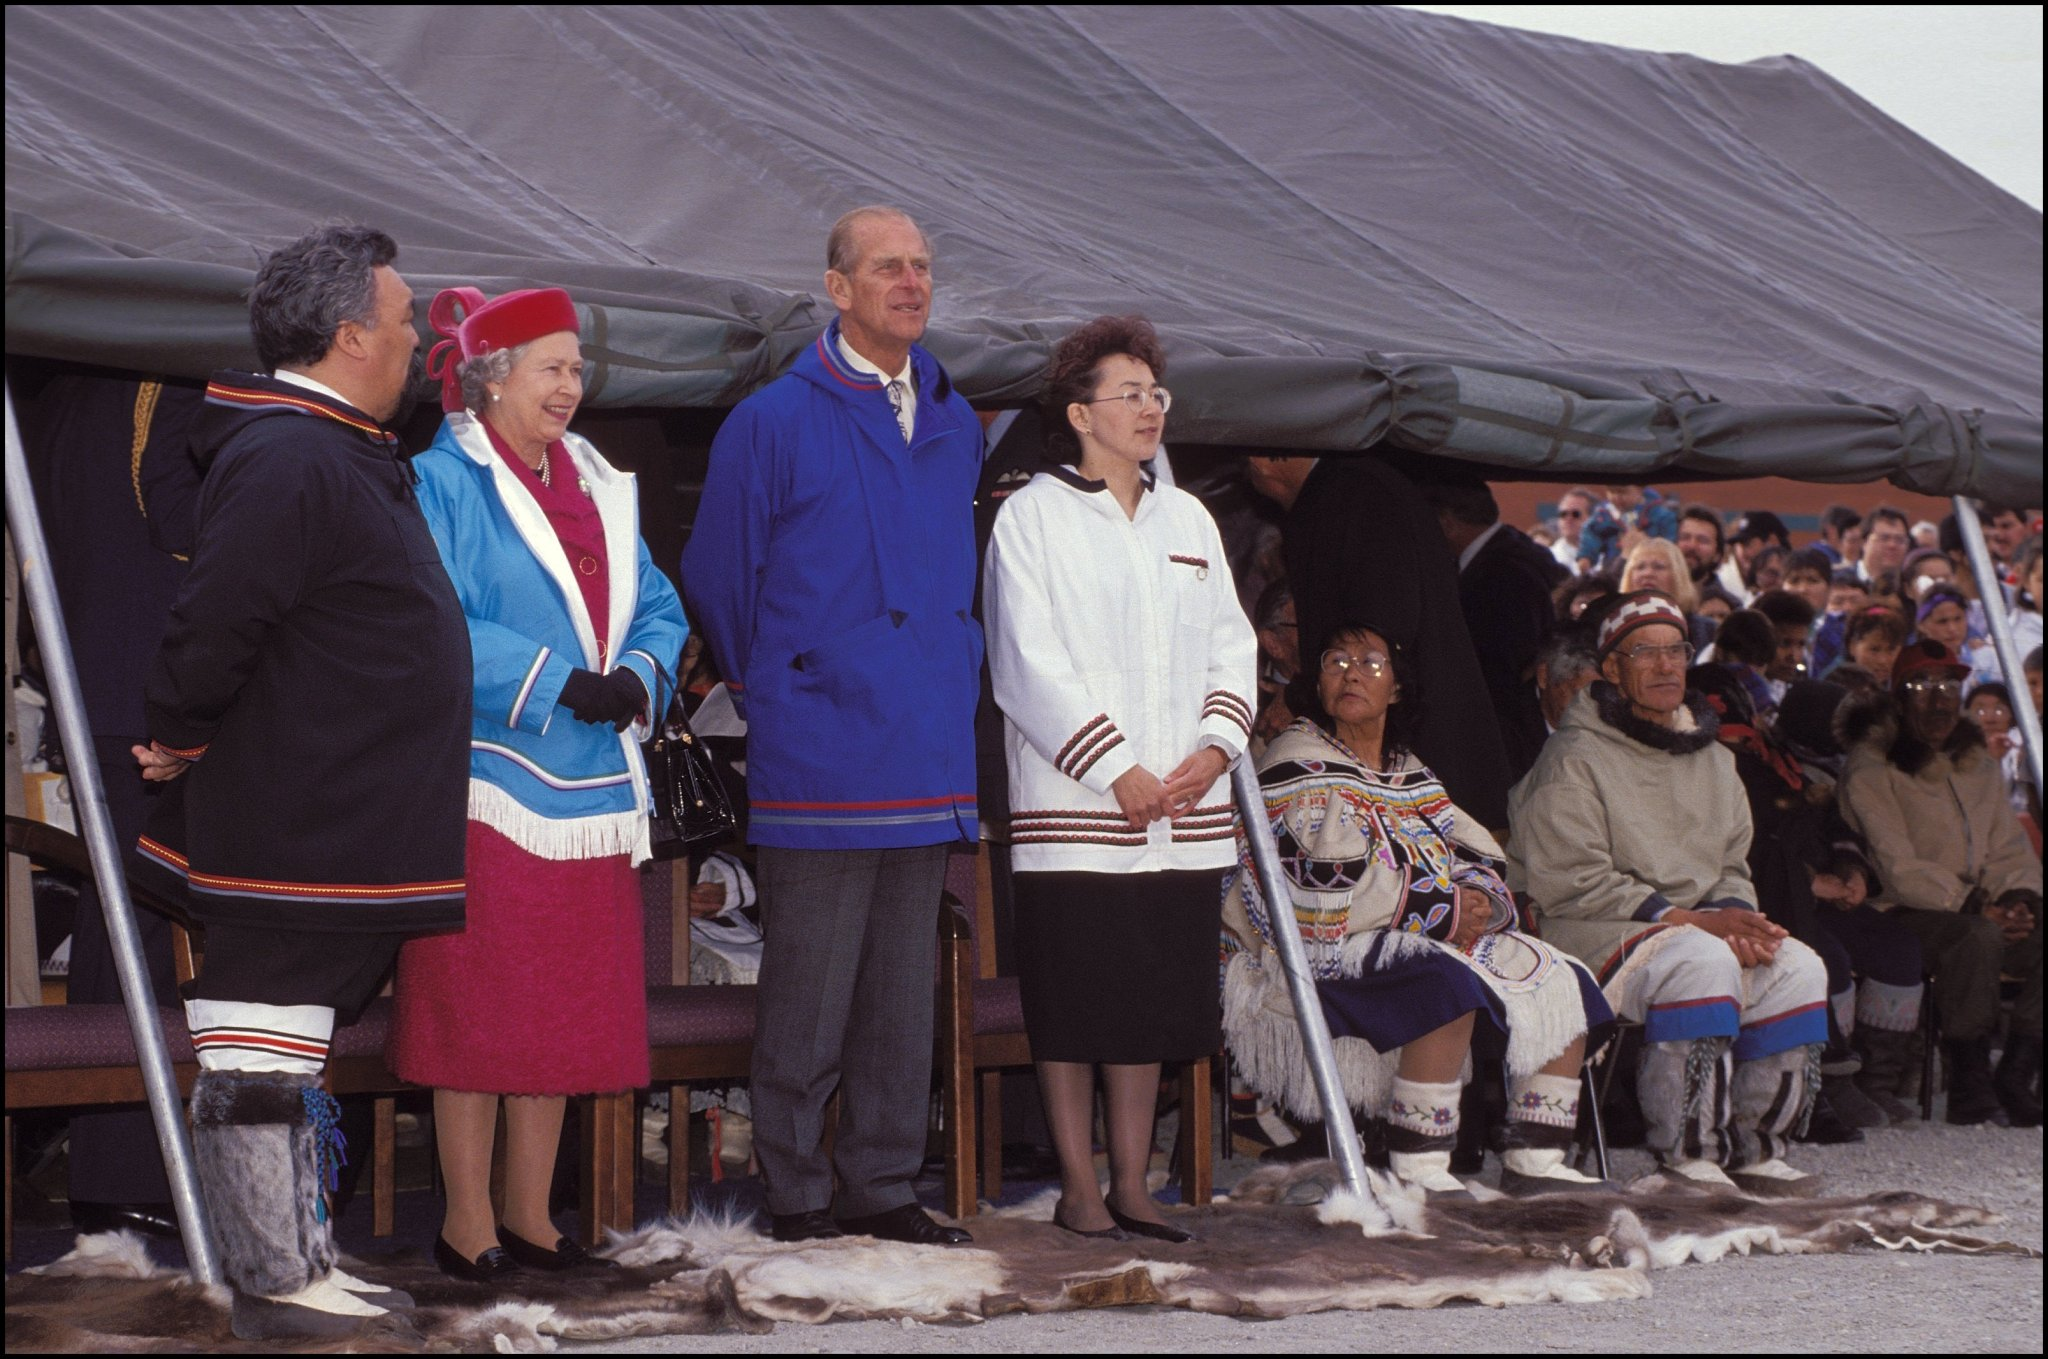 Queen Elizabeth II and Prince Philip in Canada on Aug. 22, 1994.